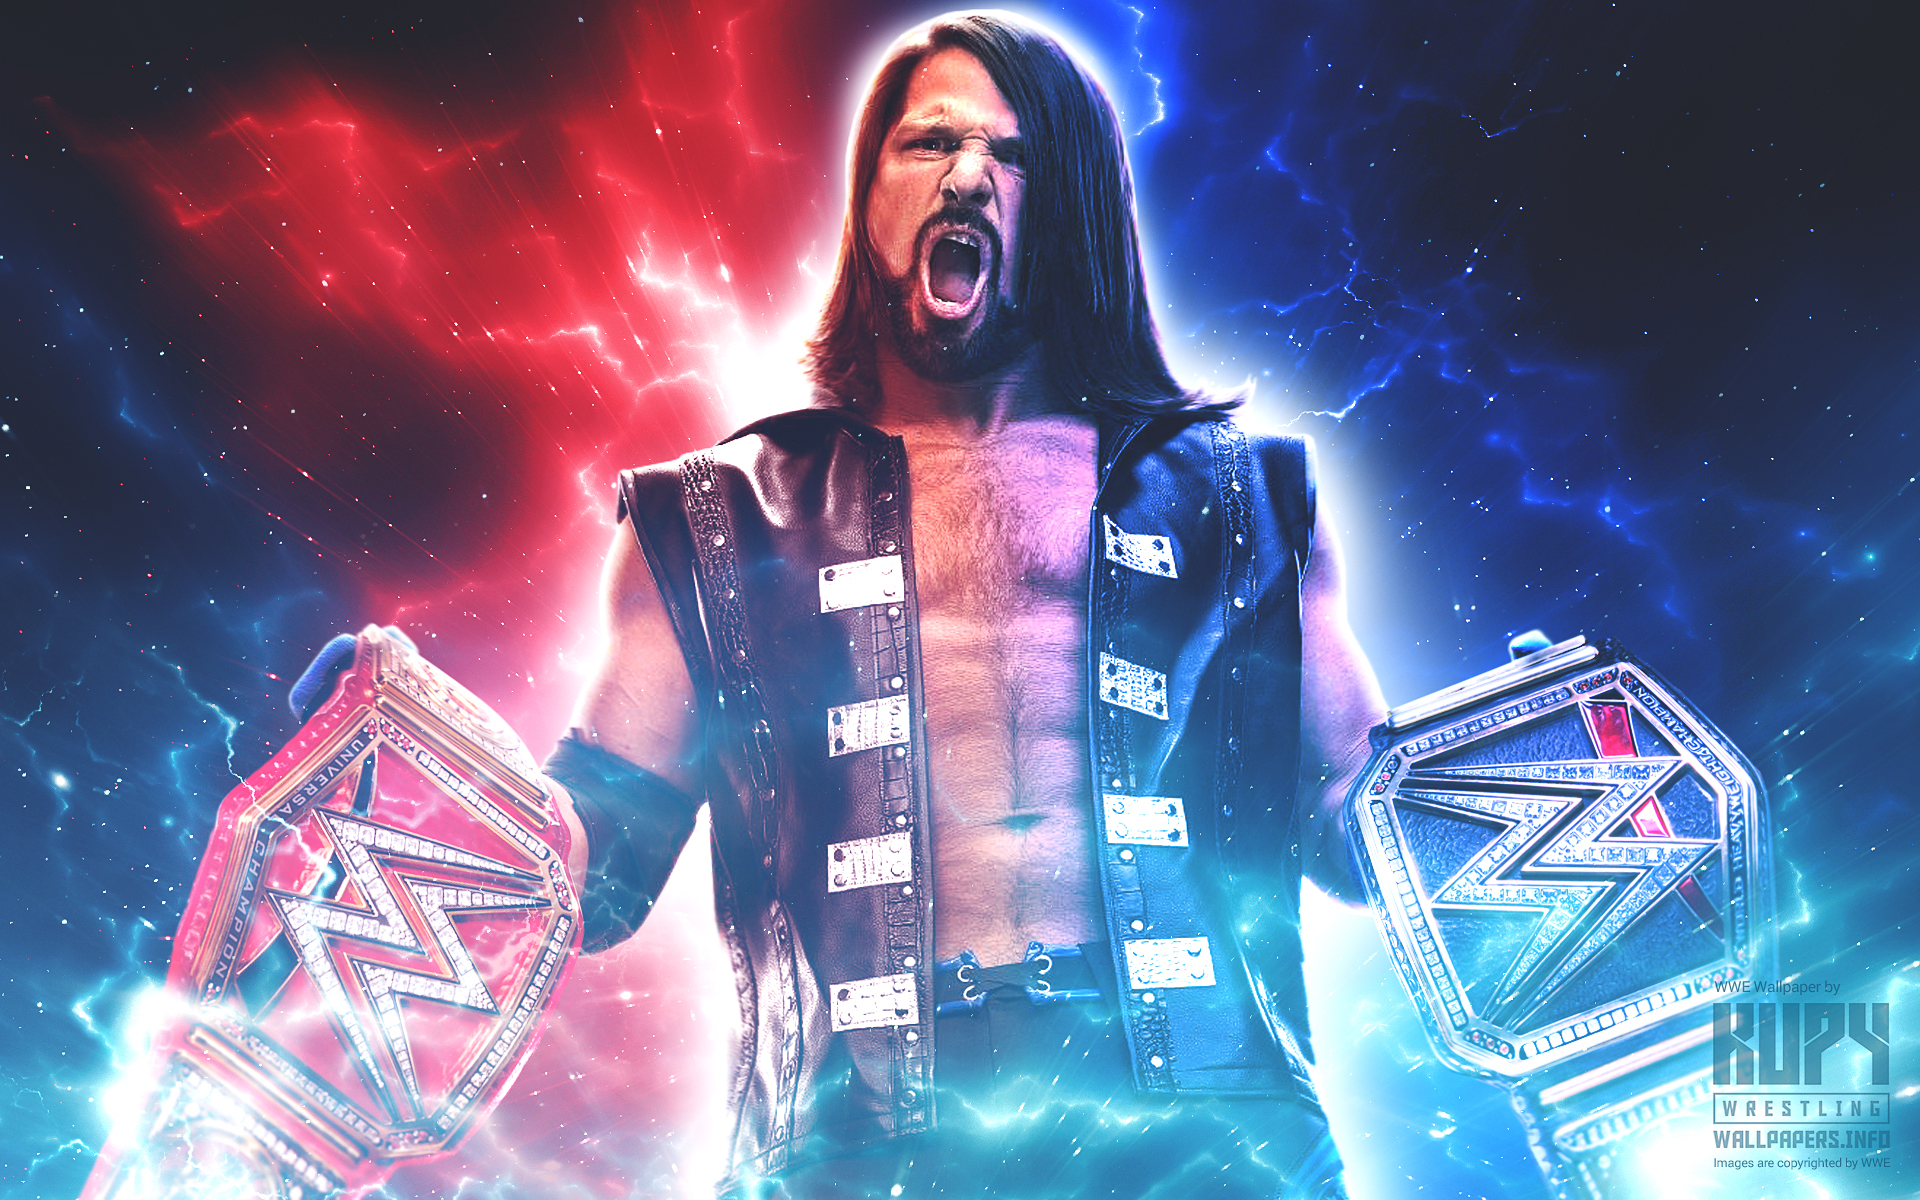 (WHAT IF) AJ Styles WWE Champion AND Universal Champion wallpaper!